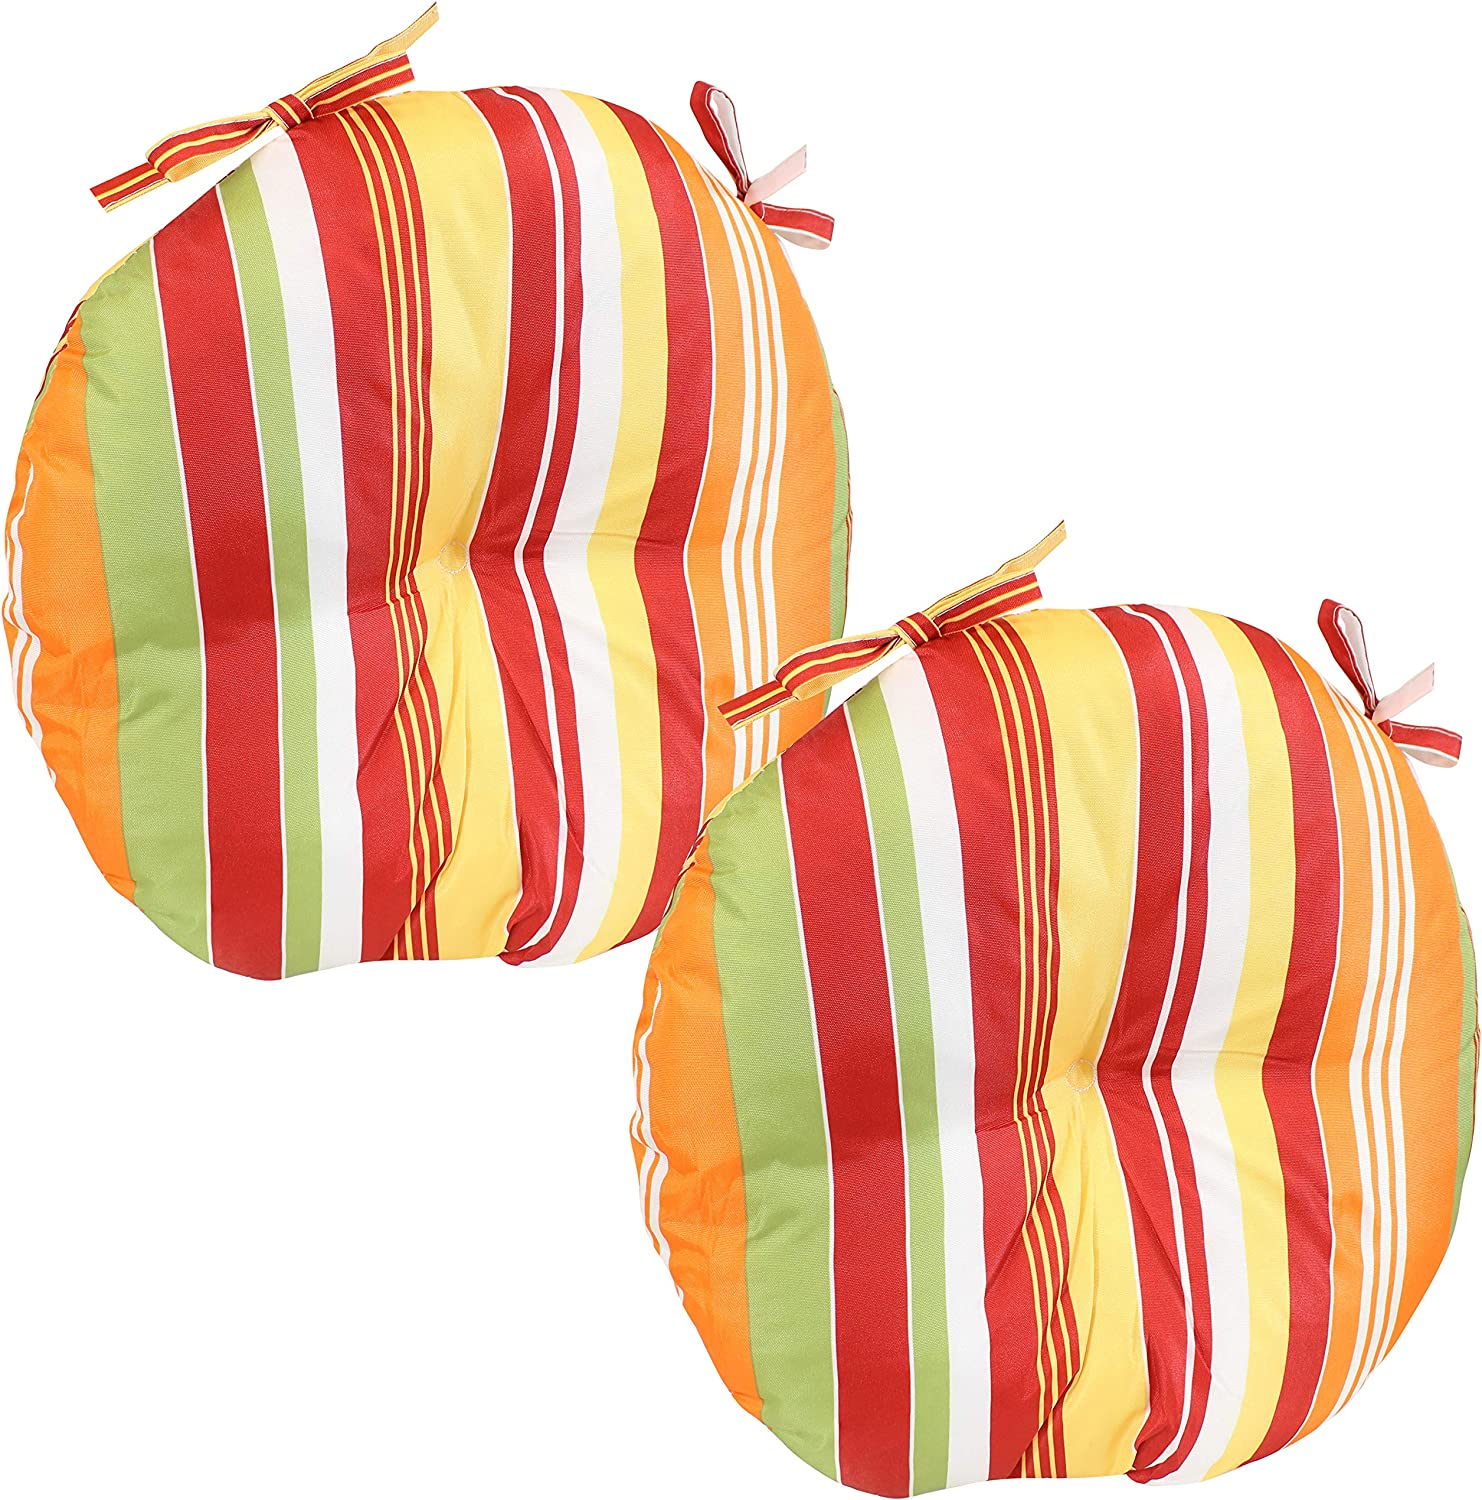 Sunnydaze Polyester Outdoor Bistro Seat Cushions - Set of 2 - 15-Inch Diameter x 4 Inches Thick - Cozy Round Seat Cushions for Outdoor Chairs - Perfect for The Porch, Lawn, or Deck - Sherbert Stripes